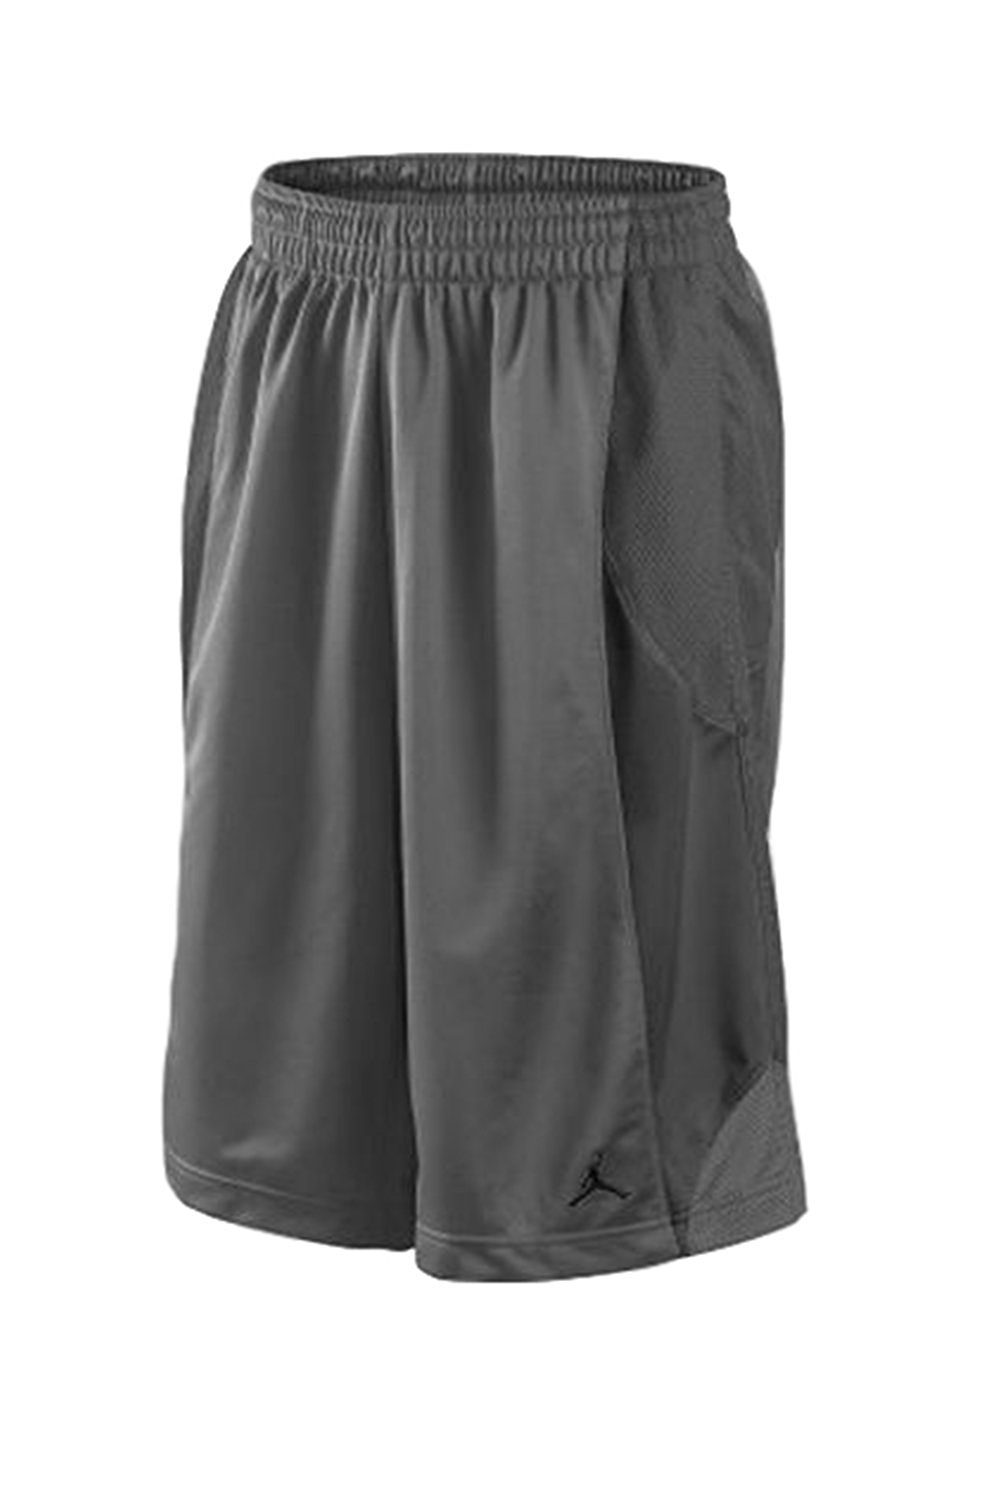 e7dd91796011b7 Buy Nike Mens Air Jordan Durasheen Jumpman Basketball Shorts Gray in ...